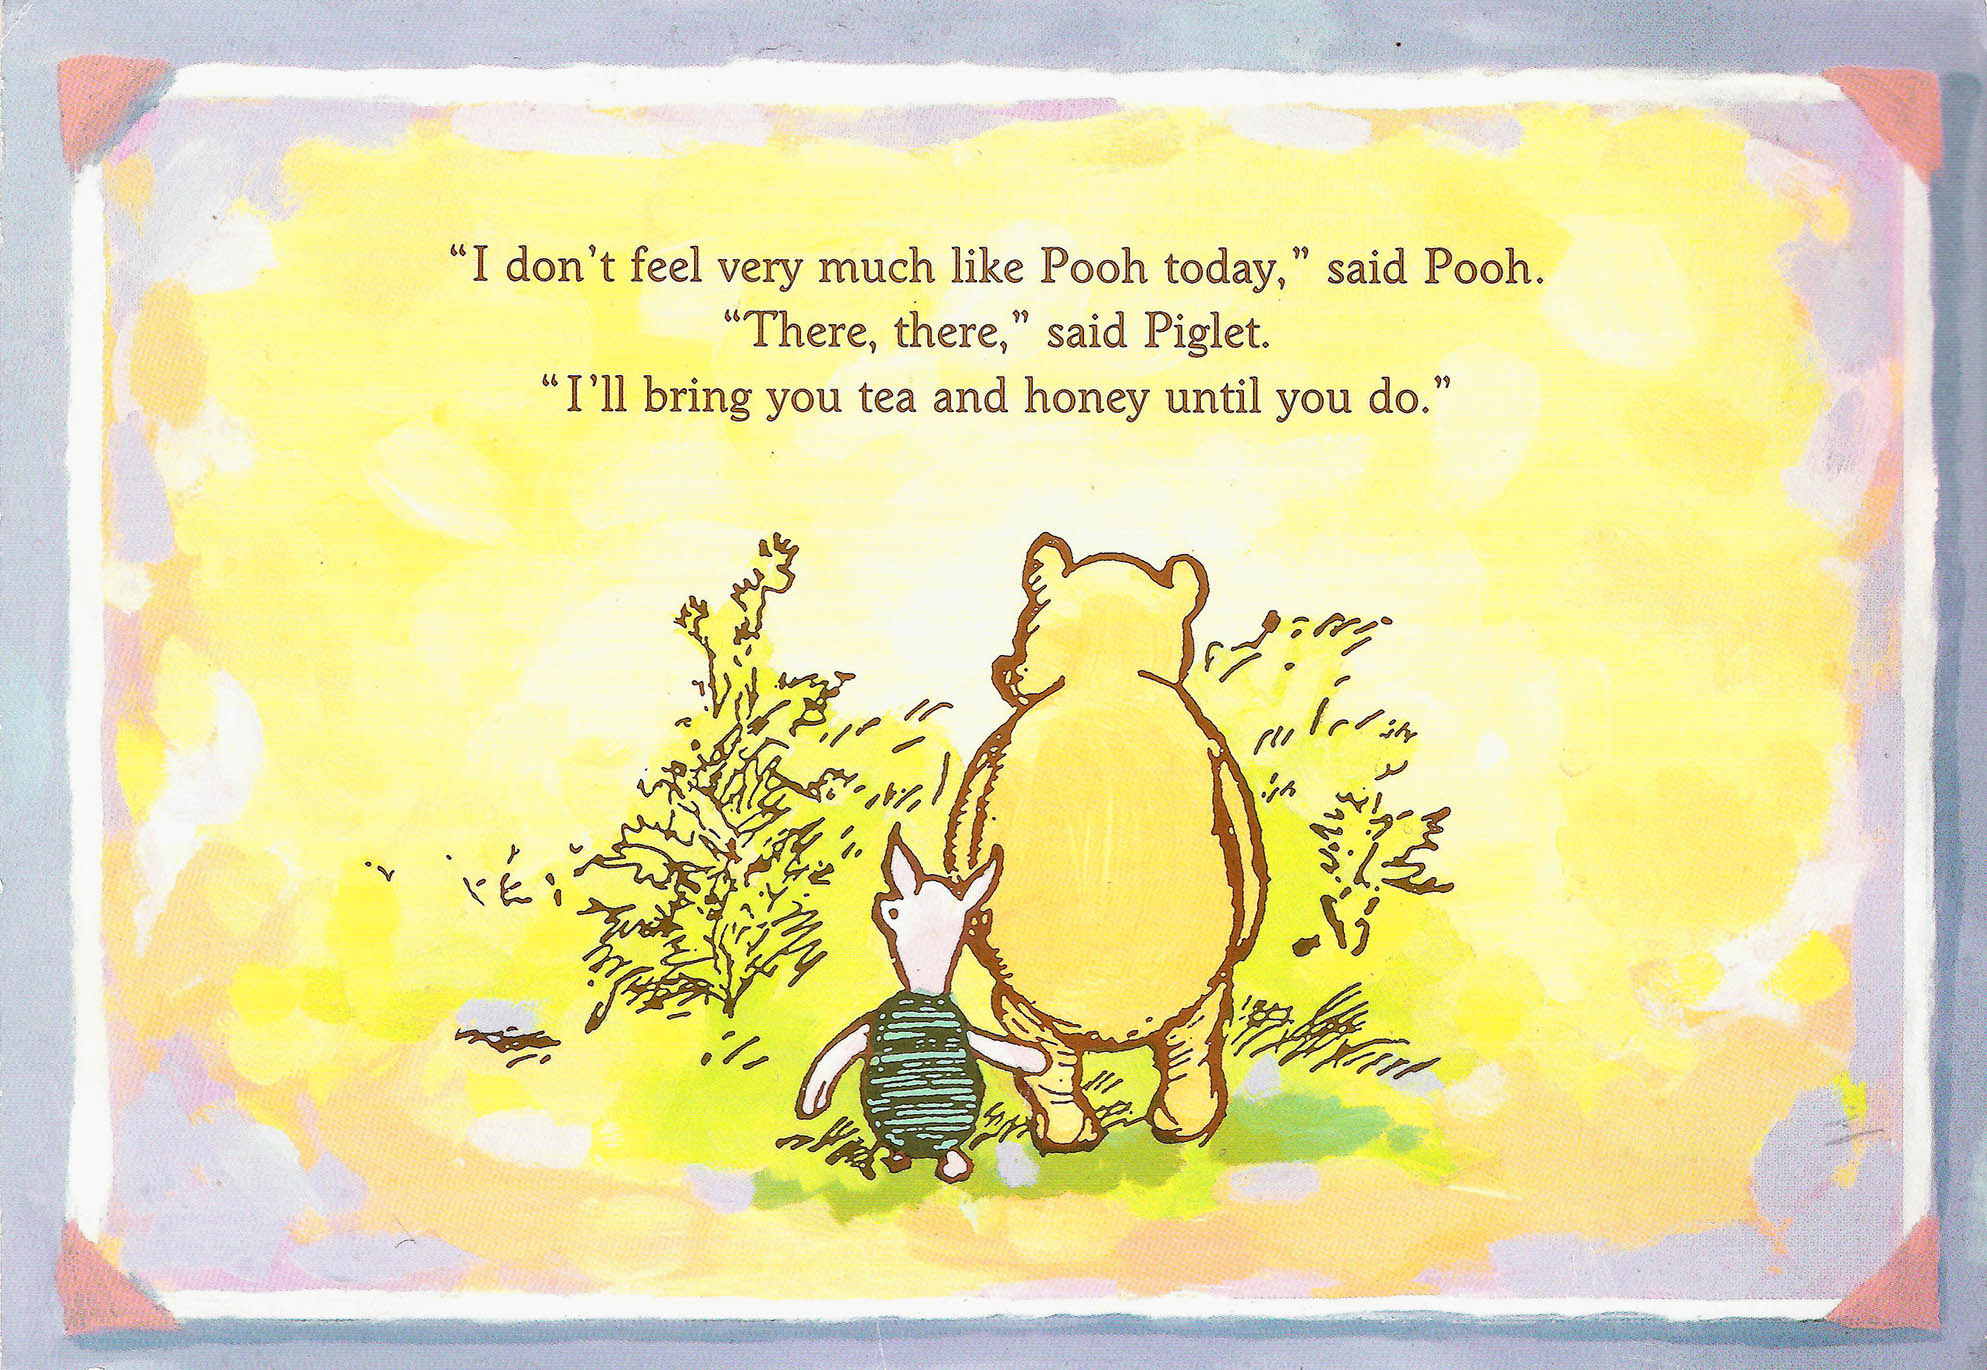 Pooh Quotes About Friendship Friendship Quotes Winnie Pooh Friendship Quotes The Bestthe